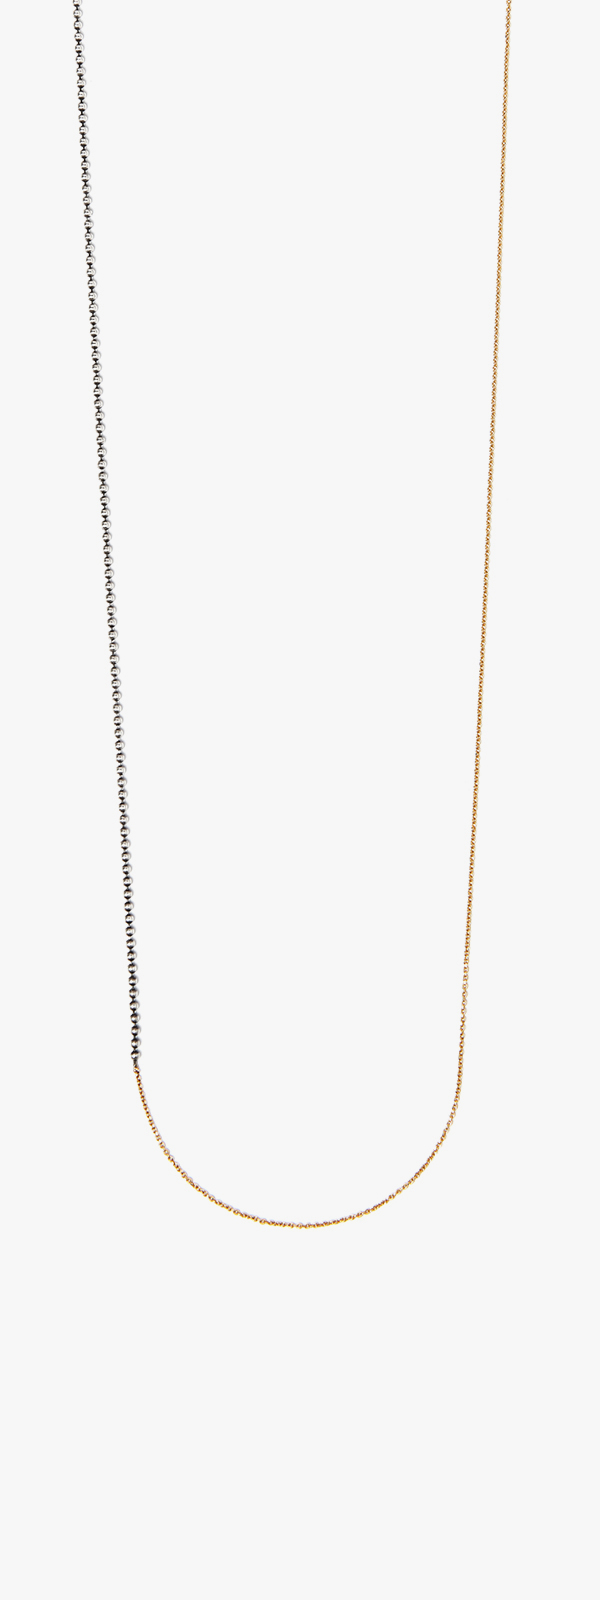 Image of Mixed Metal Necklace 094